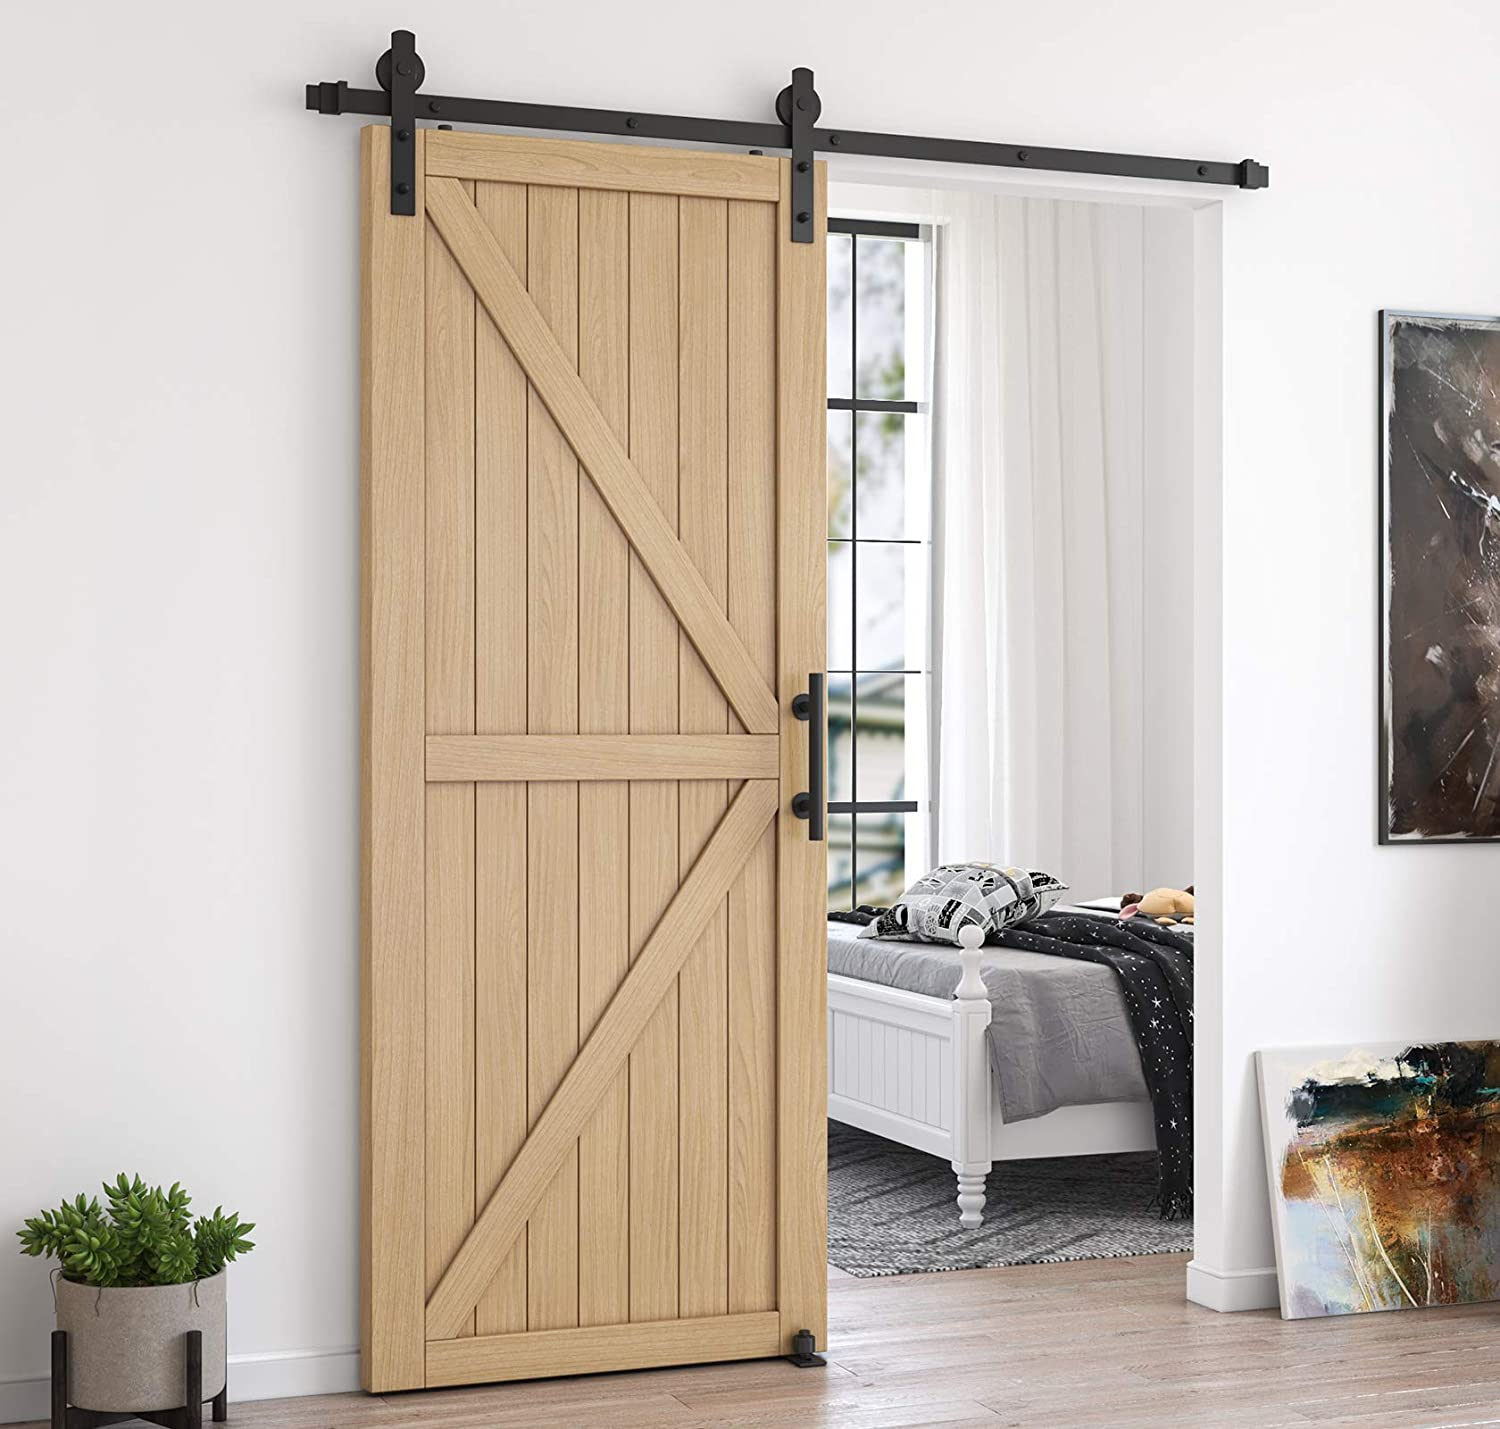 Black Fit 1 3//8-1 3//4 Thickness /& 36 Wide Door Panel Homlux 6ft Heavy Duty Sturdy Sliding Barn Door Hardware Kit Single Door-Smoothly and Quietly Easy to Install and Reusable I Shape Hanger